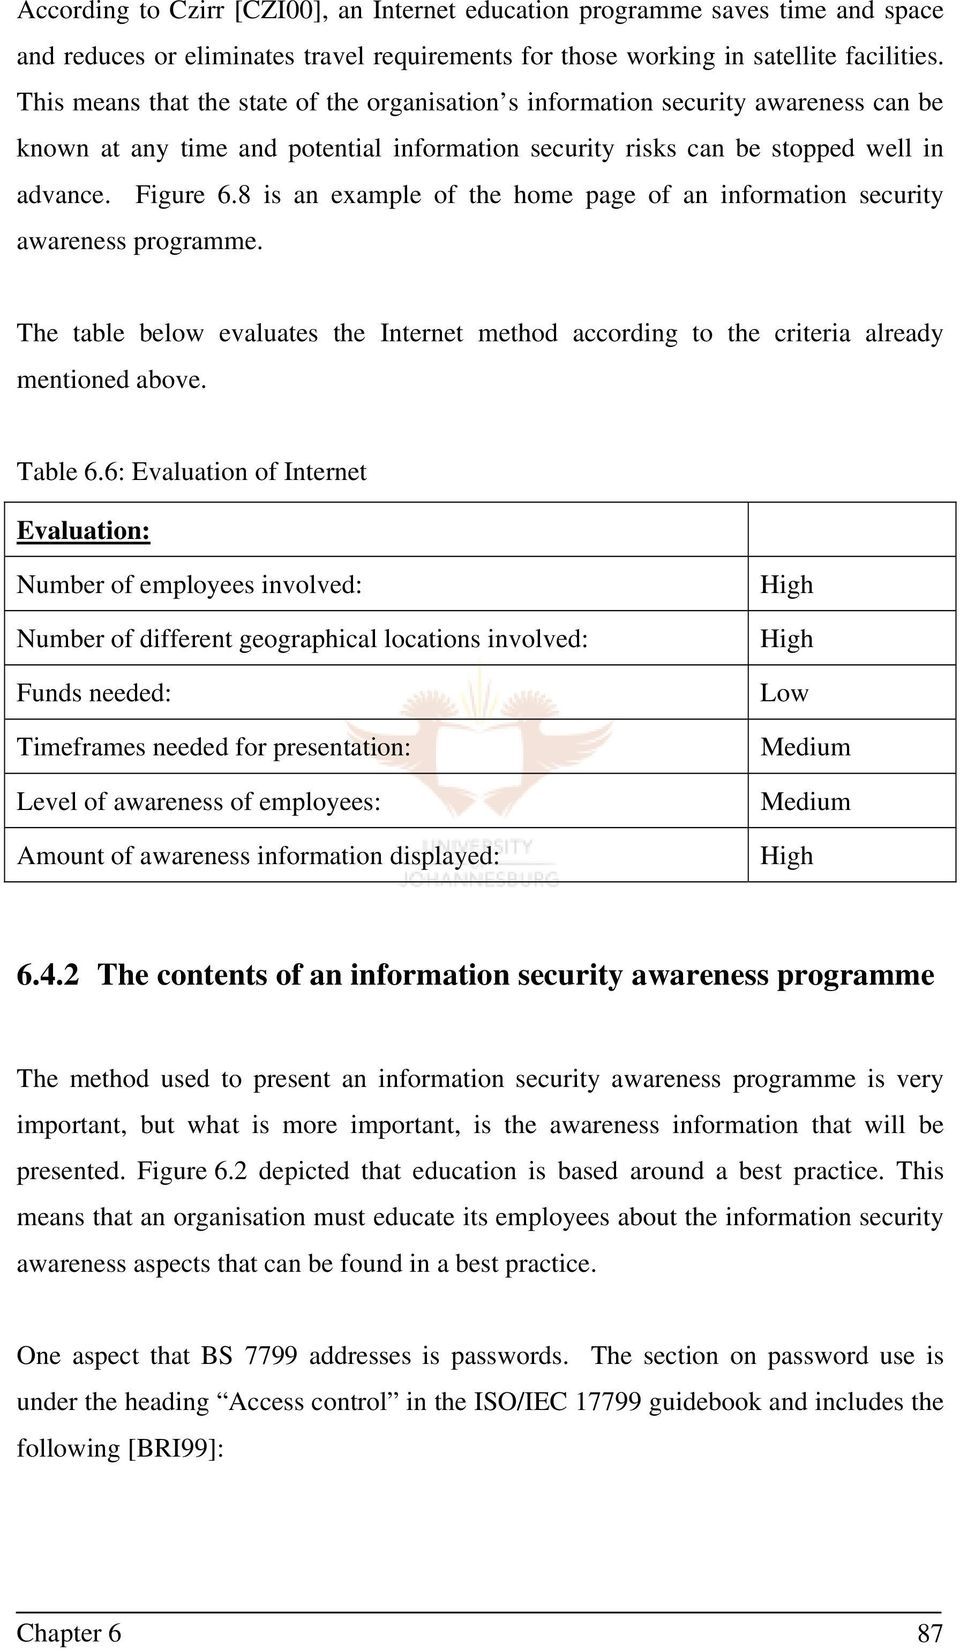 8 is an example of the home page of an information security awareness programme. The table below evaluates the Internet method according to the criteria already mentioned above. Table 6.